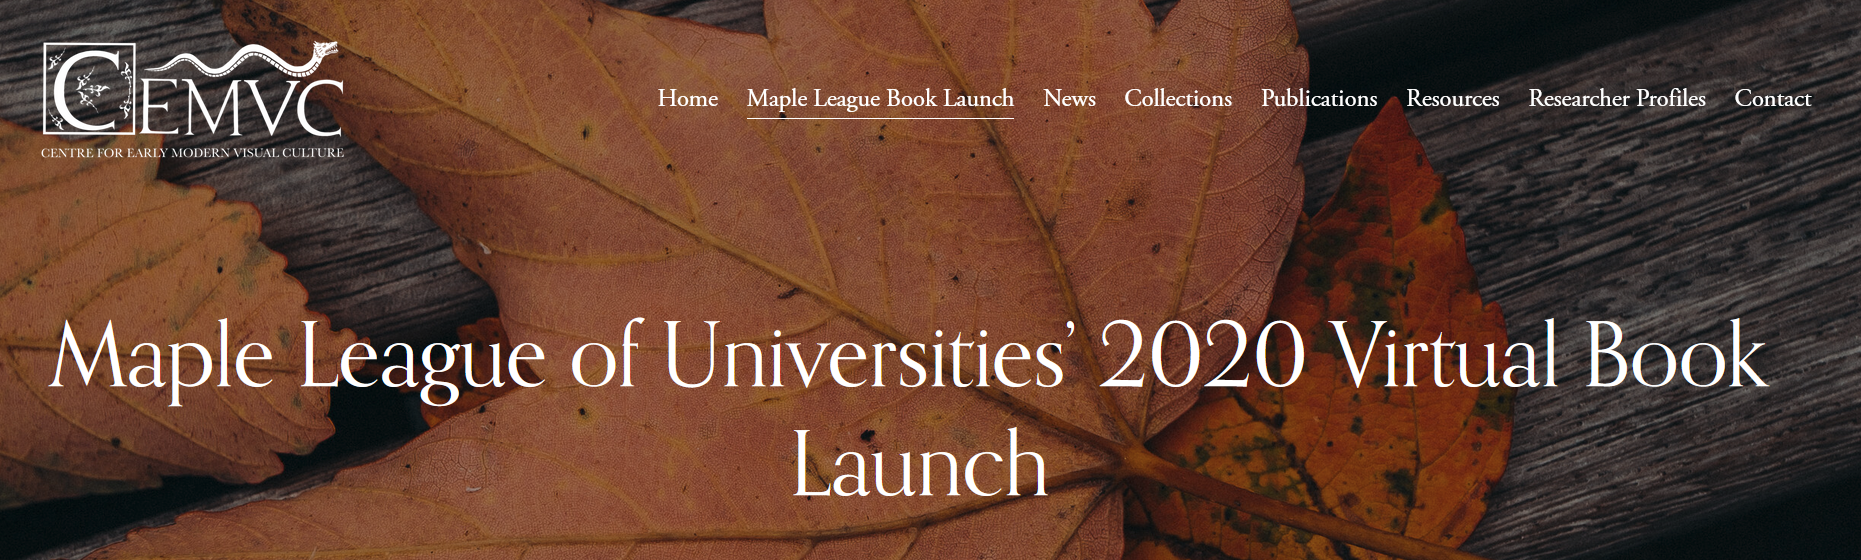 Maple League Book Launch image from website